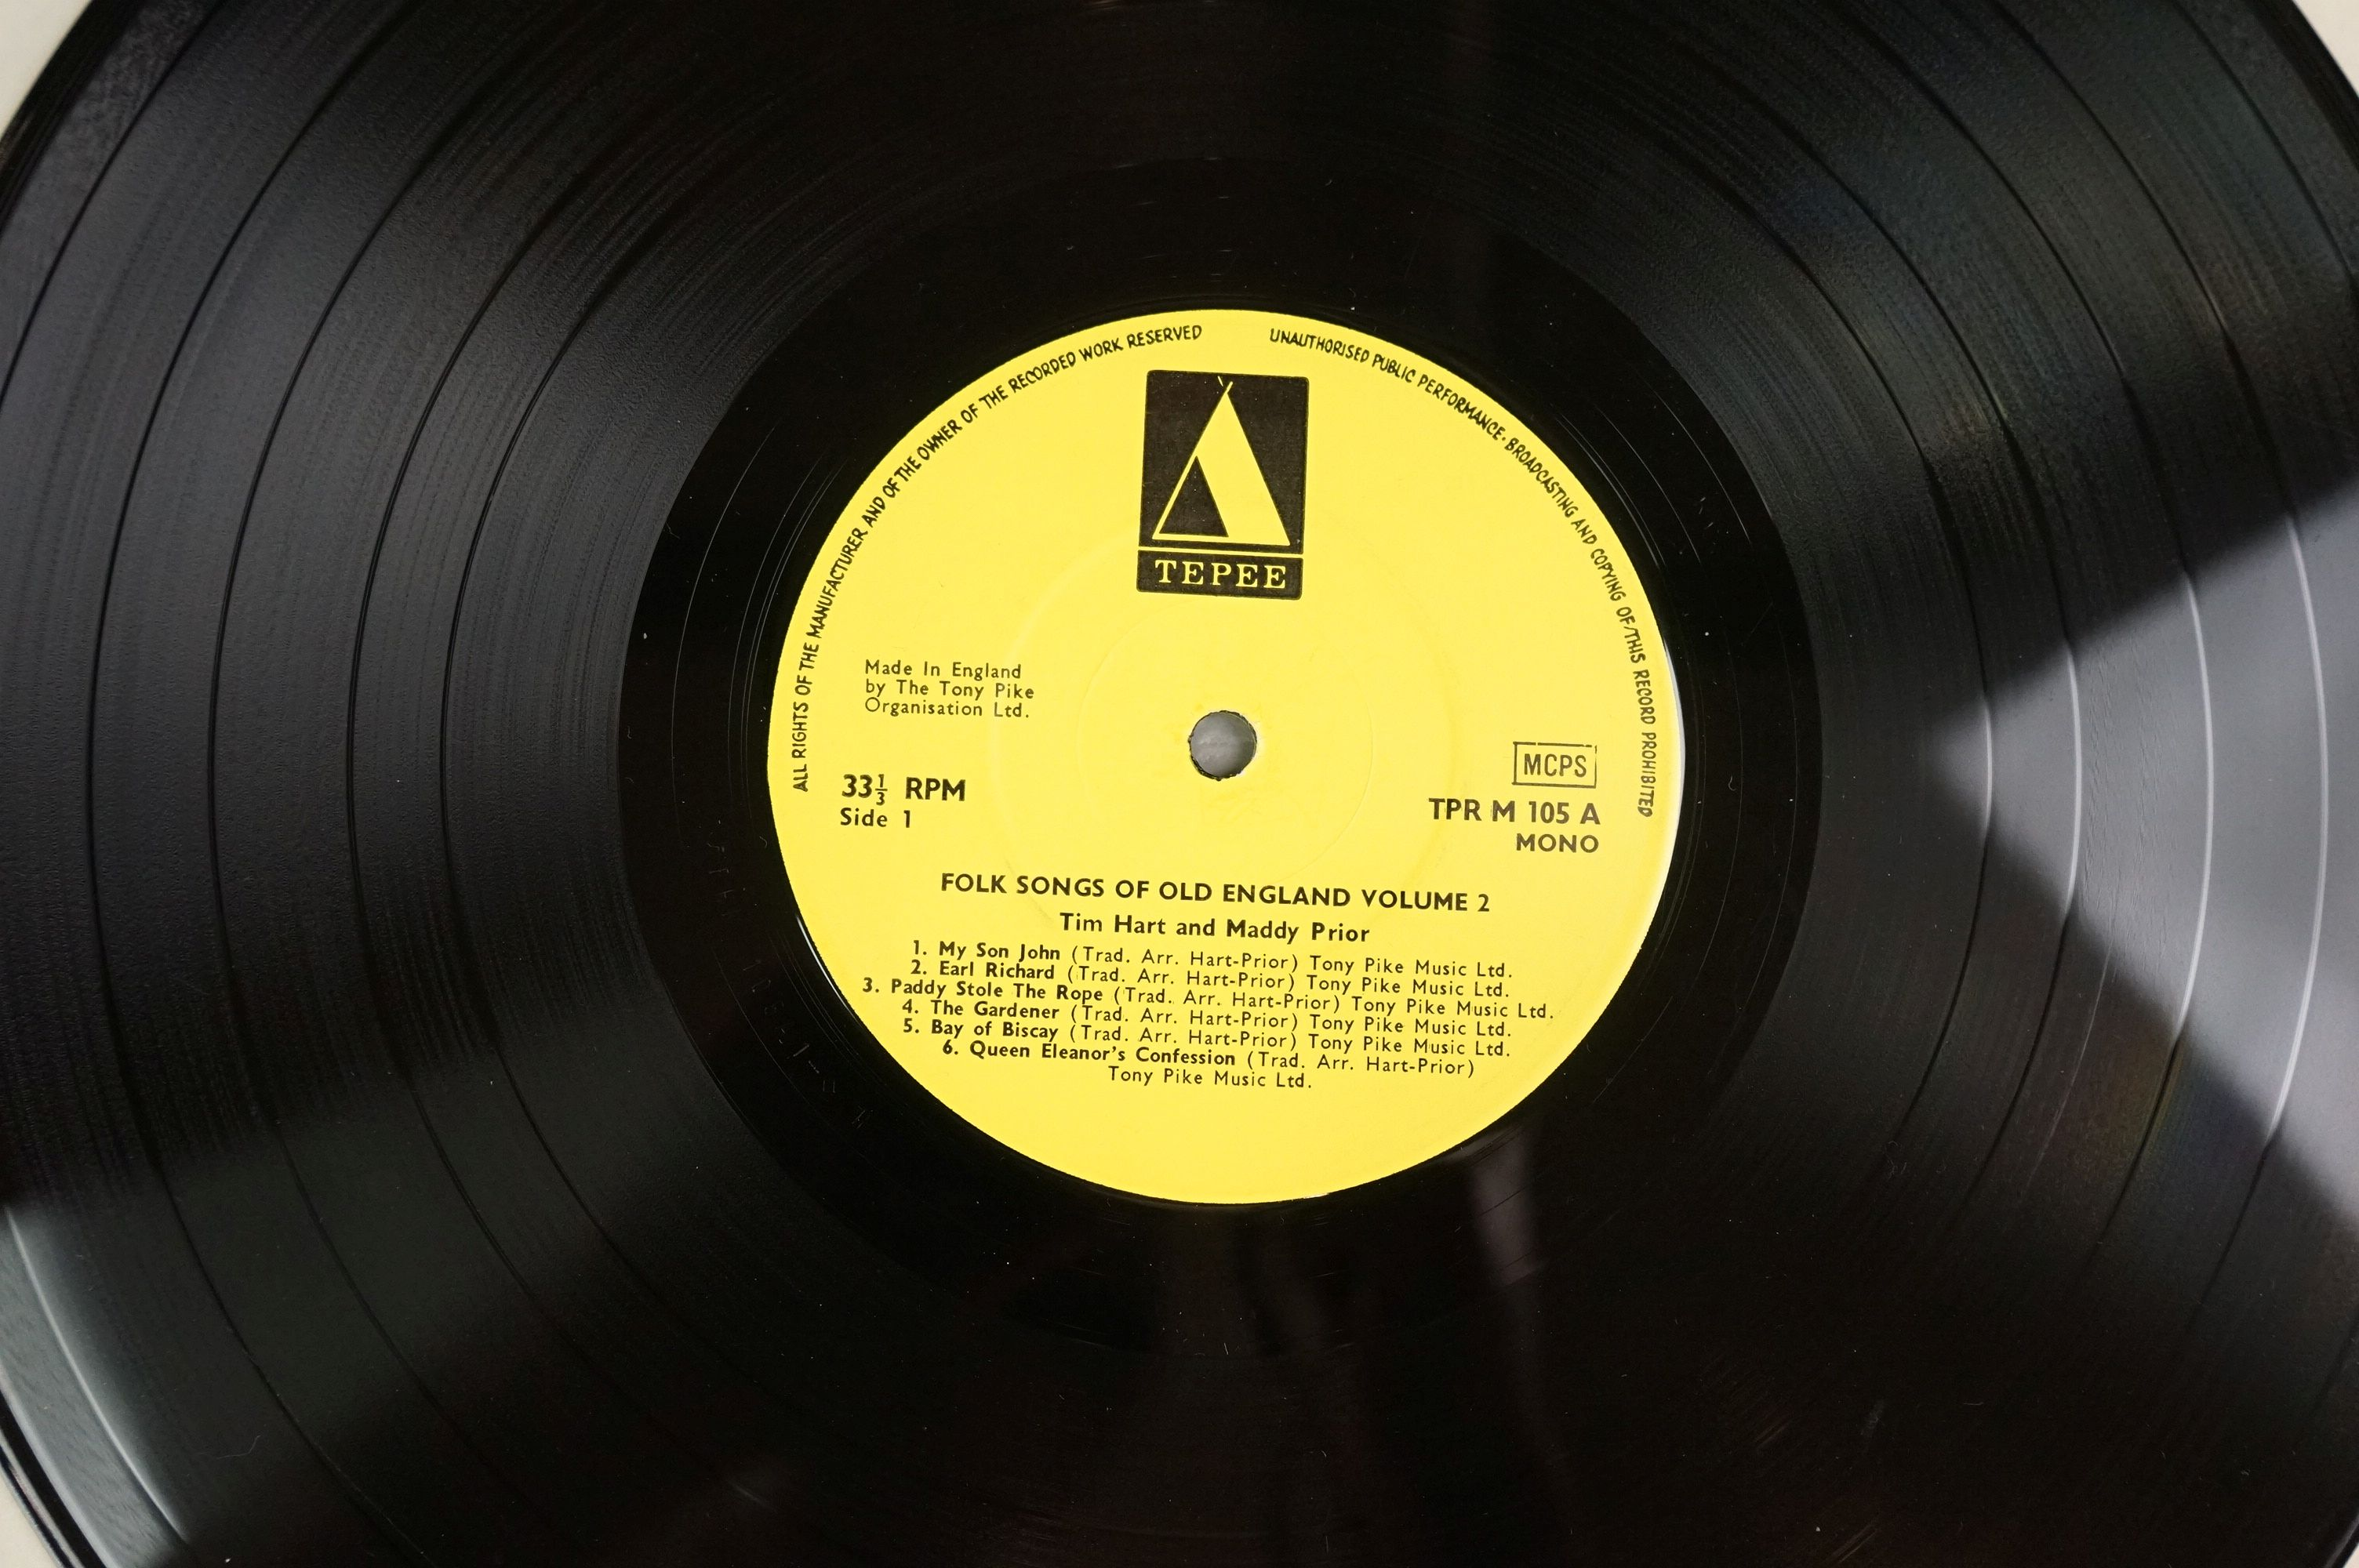 Vinyl - Tim Hart Maddy Prior Folk Songs of Old England vol 2 Tepee105 on Yellow Tepee Label, - Image 4 of 4